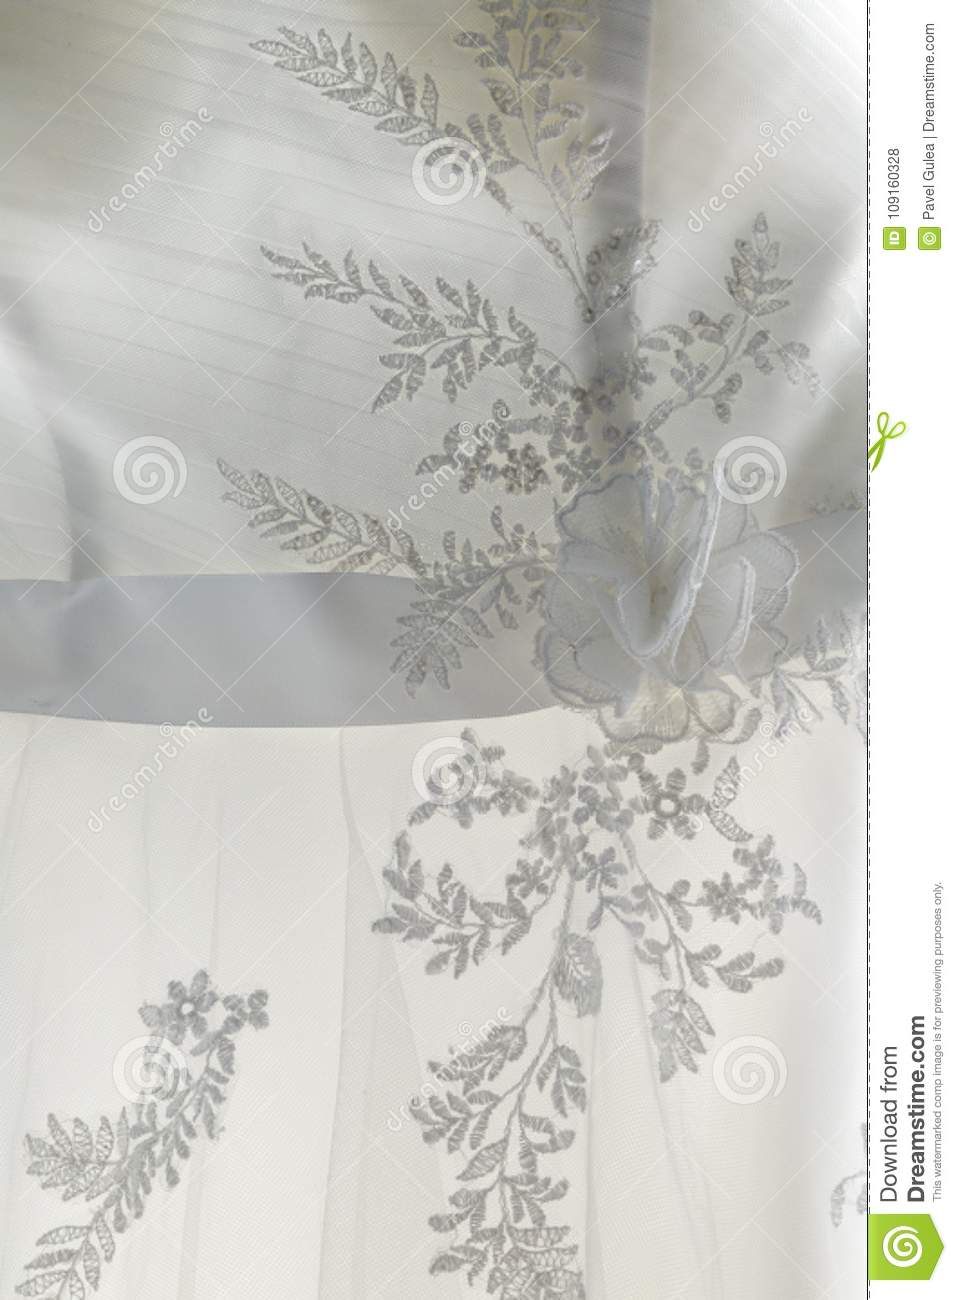 0ae4ca94ff7 Delicate lace fabric of white wedding dress of bride with embroidery in  floral shape transparent in daylight